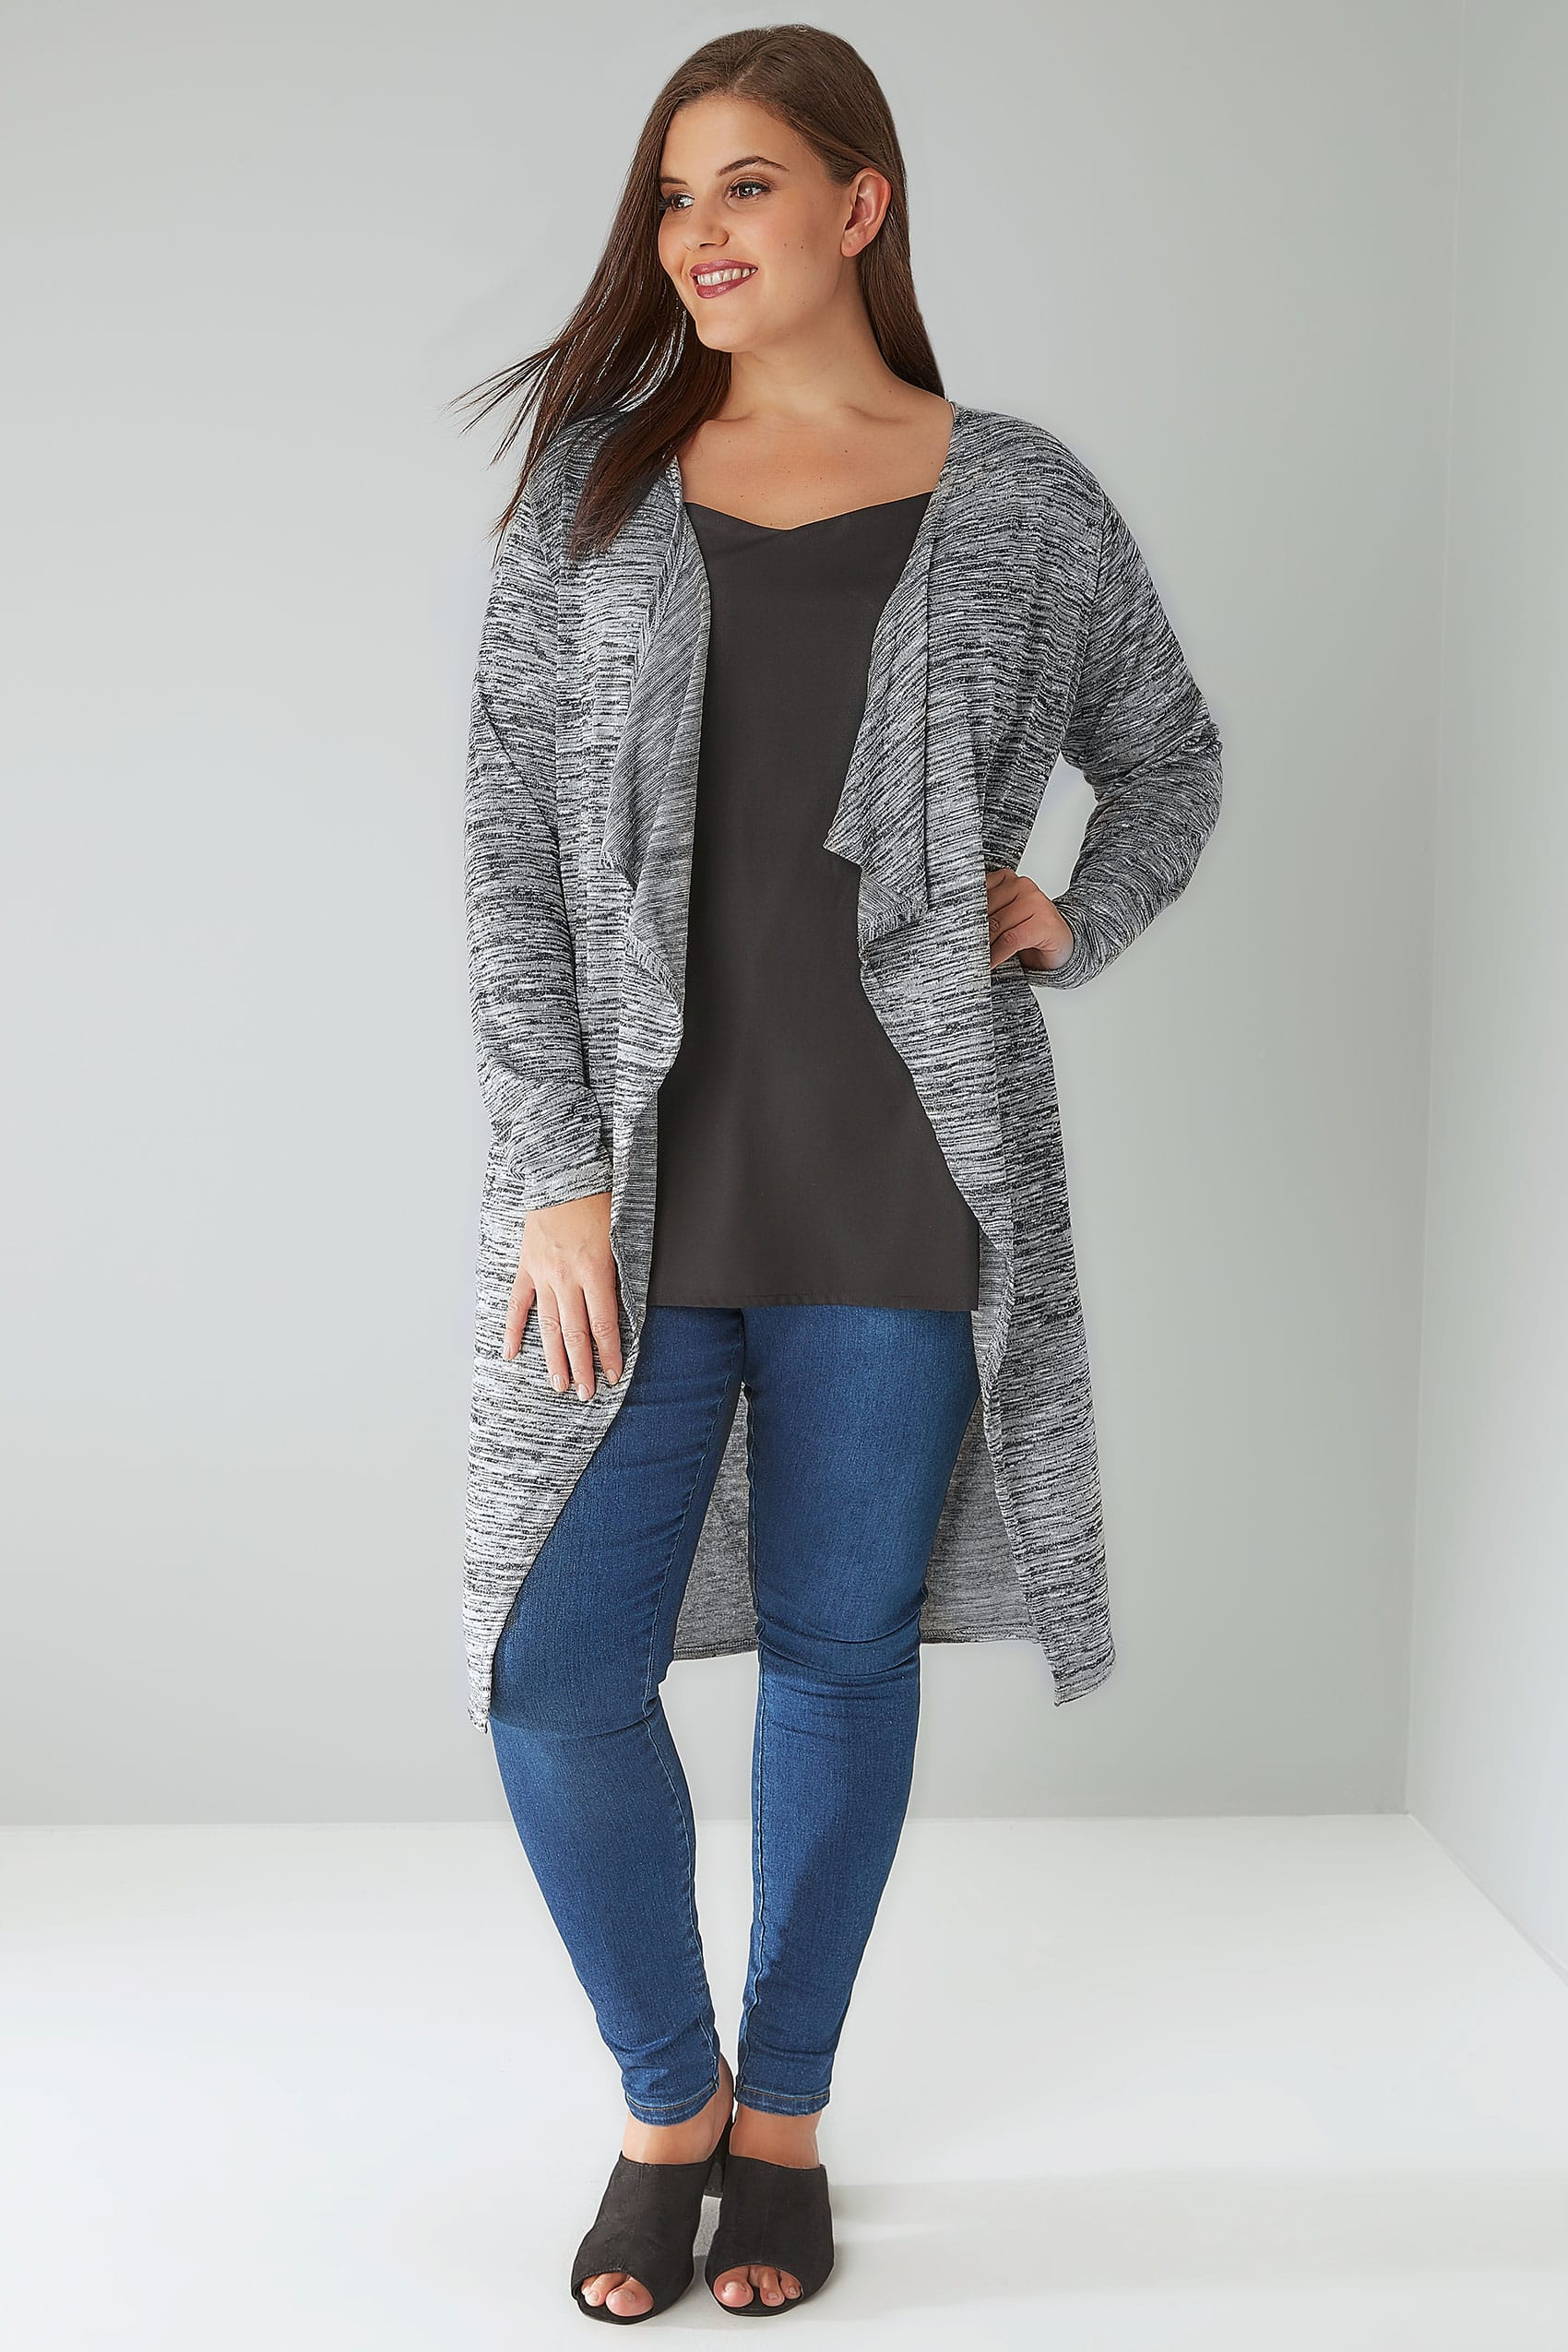 Grey Marl Space Dye Longline Waterfall Cardigan Plus size 16 to 36